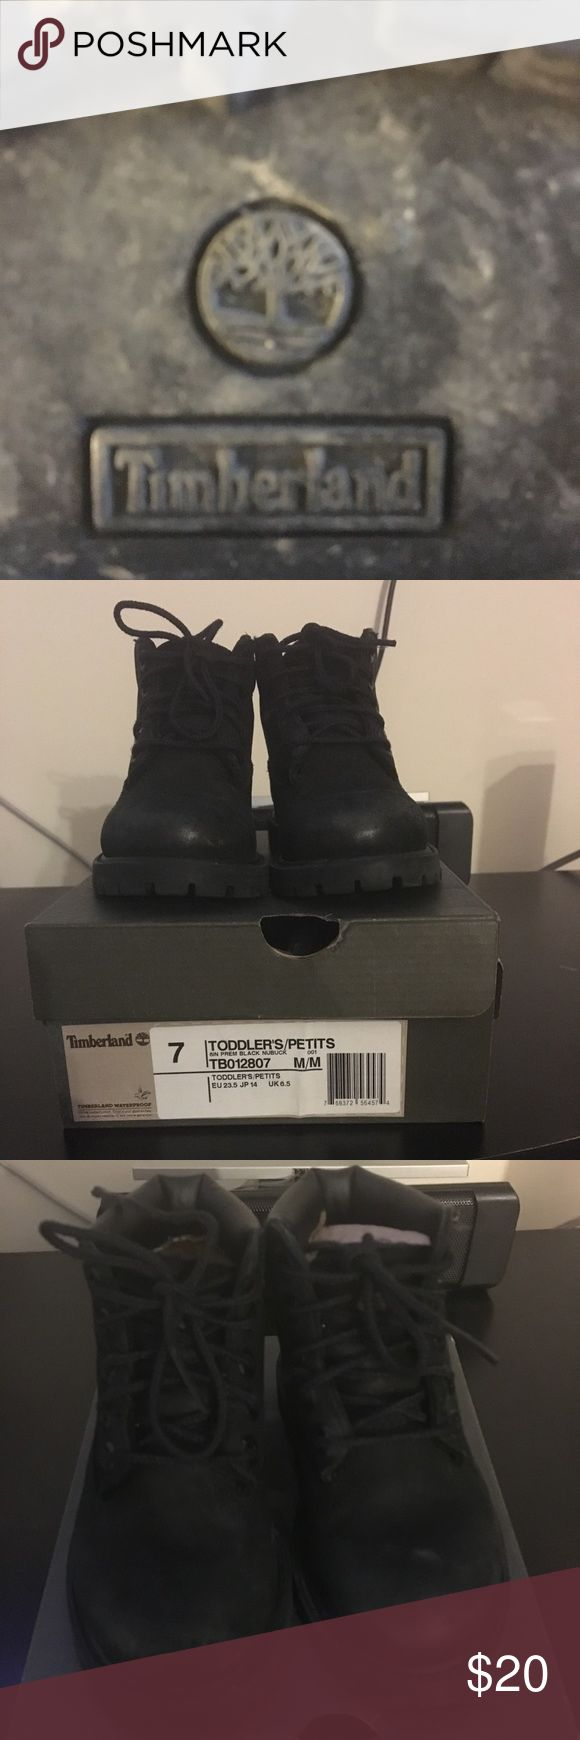 Toddler Timberland boots These are some great boots for the little one. They are a little worn but they still have a lot of miles in them. No rips or tears. Toddler size 7. Black. Comes with box. Timberland Shoes Boots